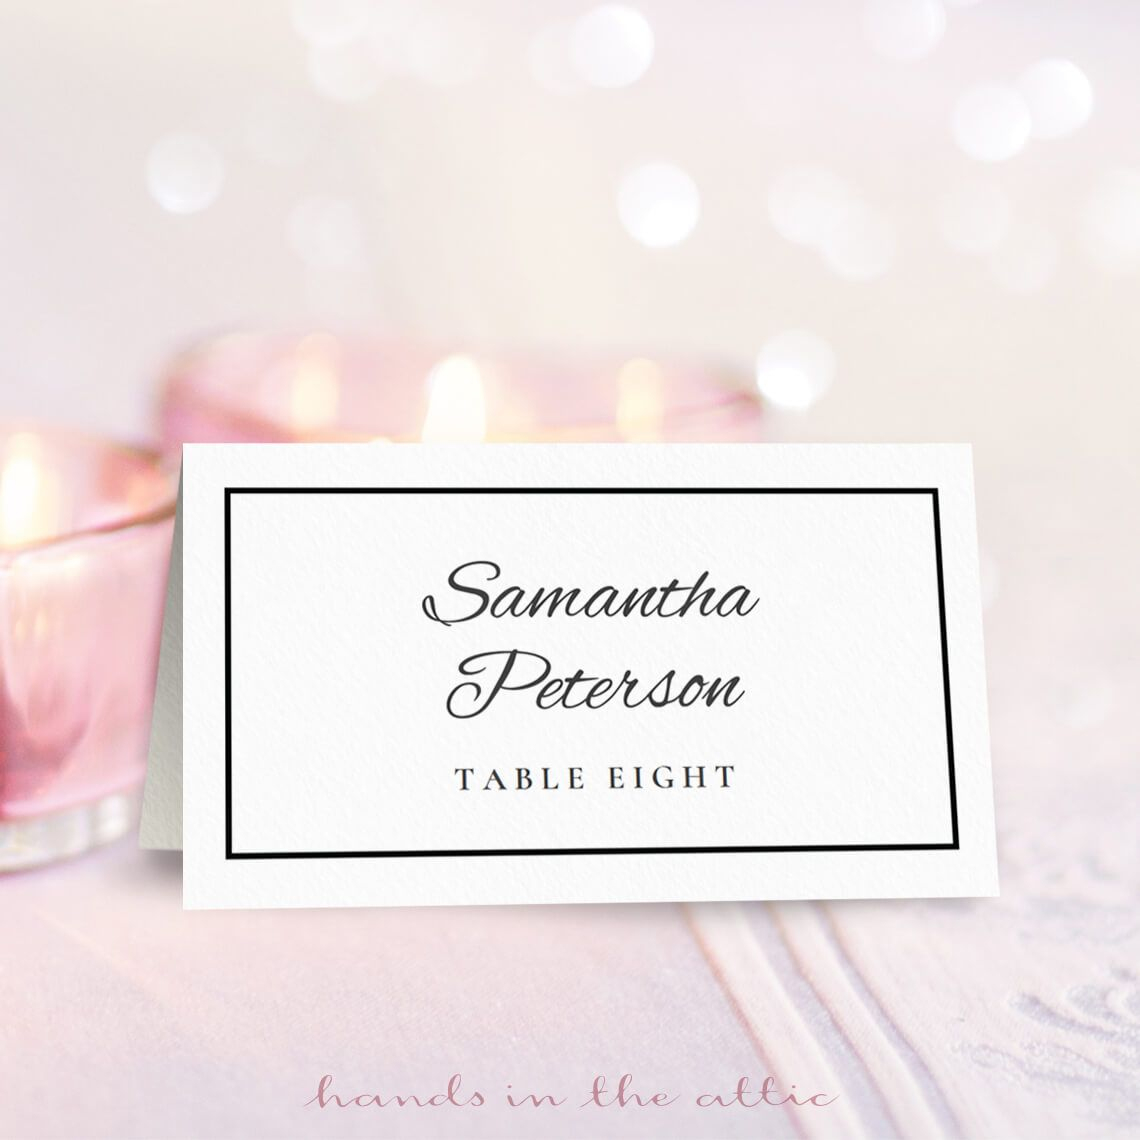 Wedding Place Card Template   Free On Handsintheattic   Place - Free Printable Place Cards Template